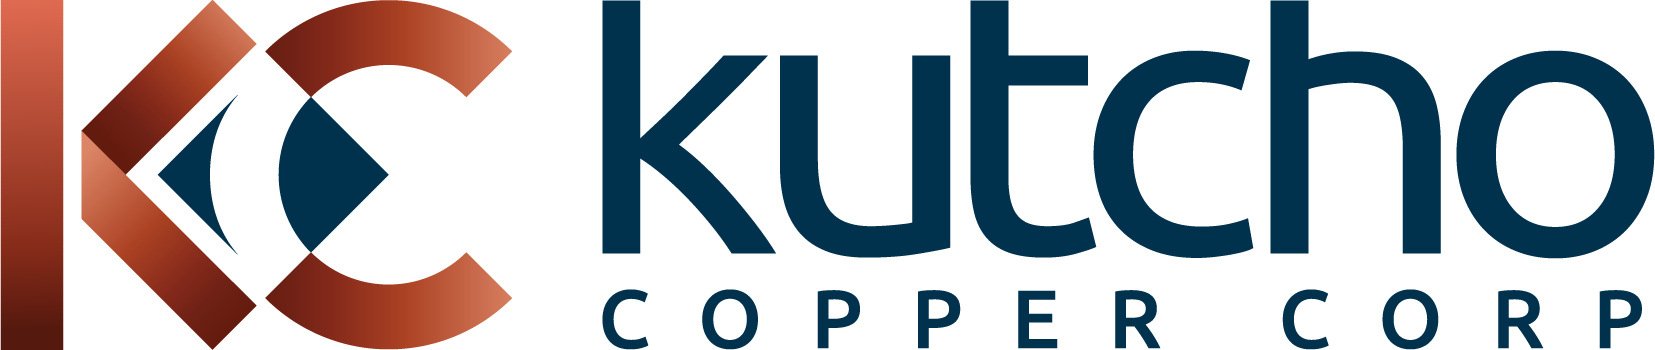 Kutcho Copper Reports Updated Mineral Resources of 18.6 MT of Measured & Indicated at 2.58% CuEq1 and 13.2 MT of Inferred at 1